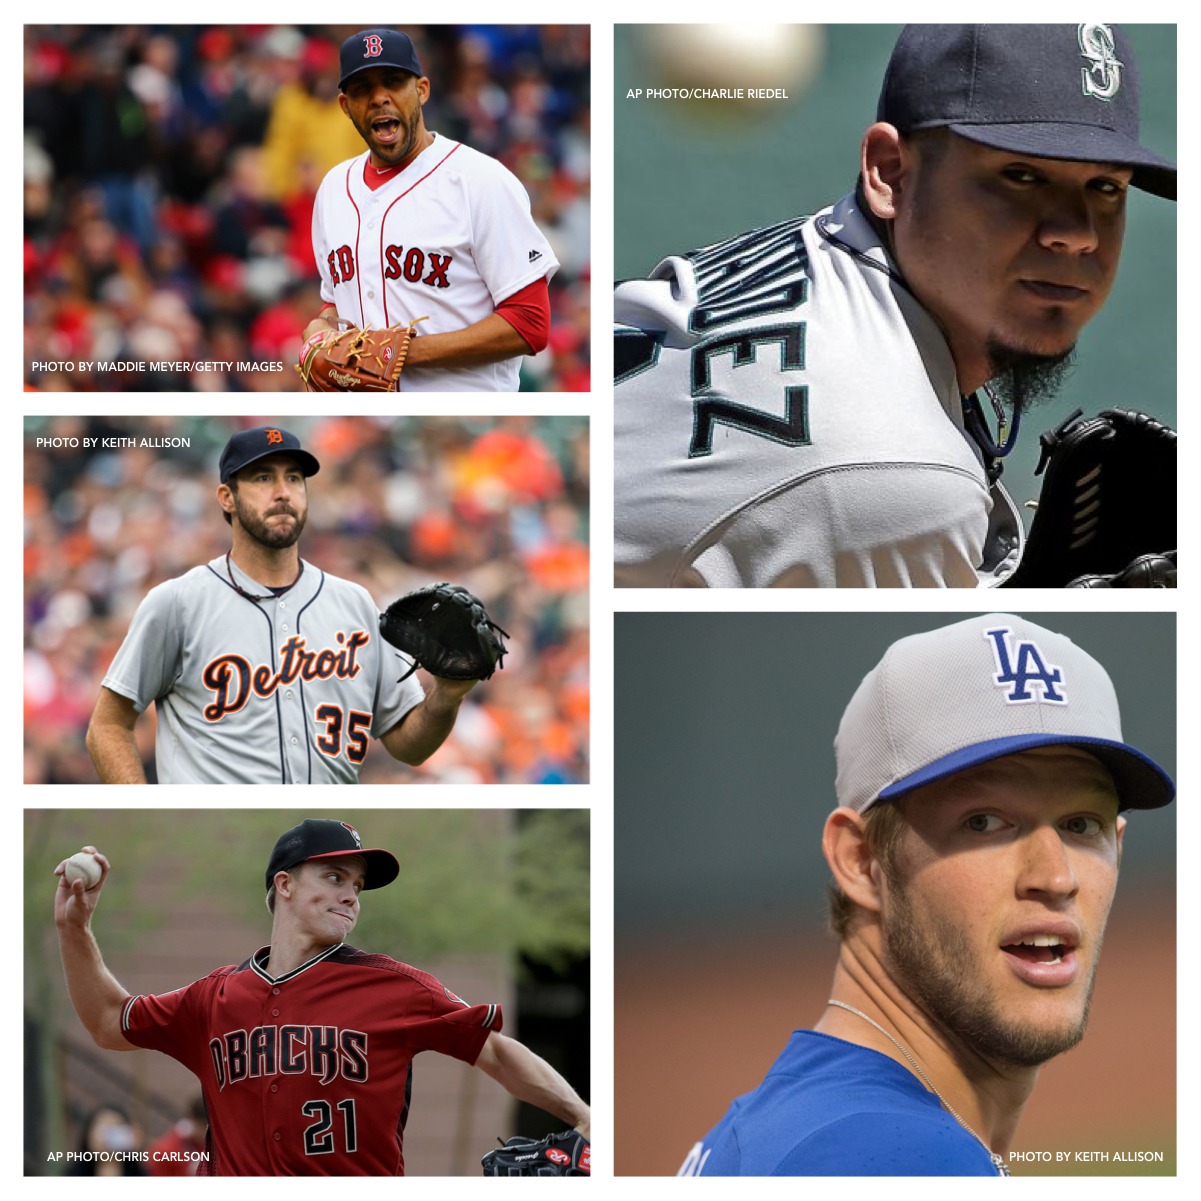 WHAT DO THE TOP 5 HIGHEST PAID PITCHERS HAVE IN COMMON?